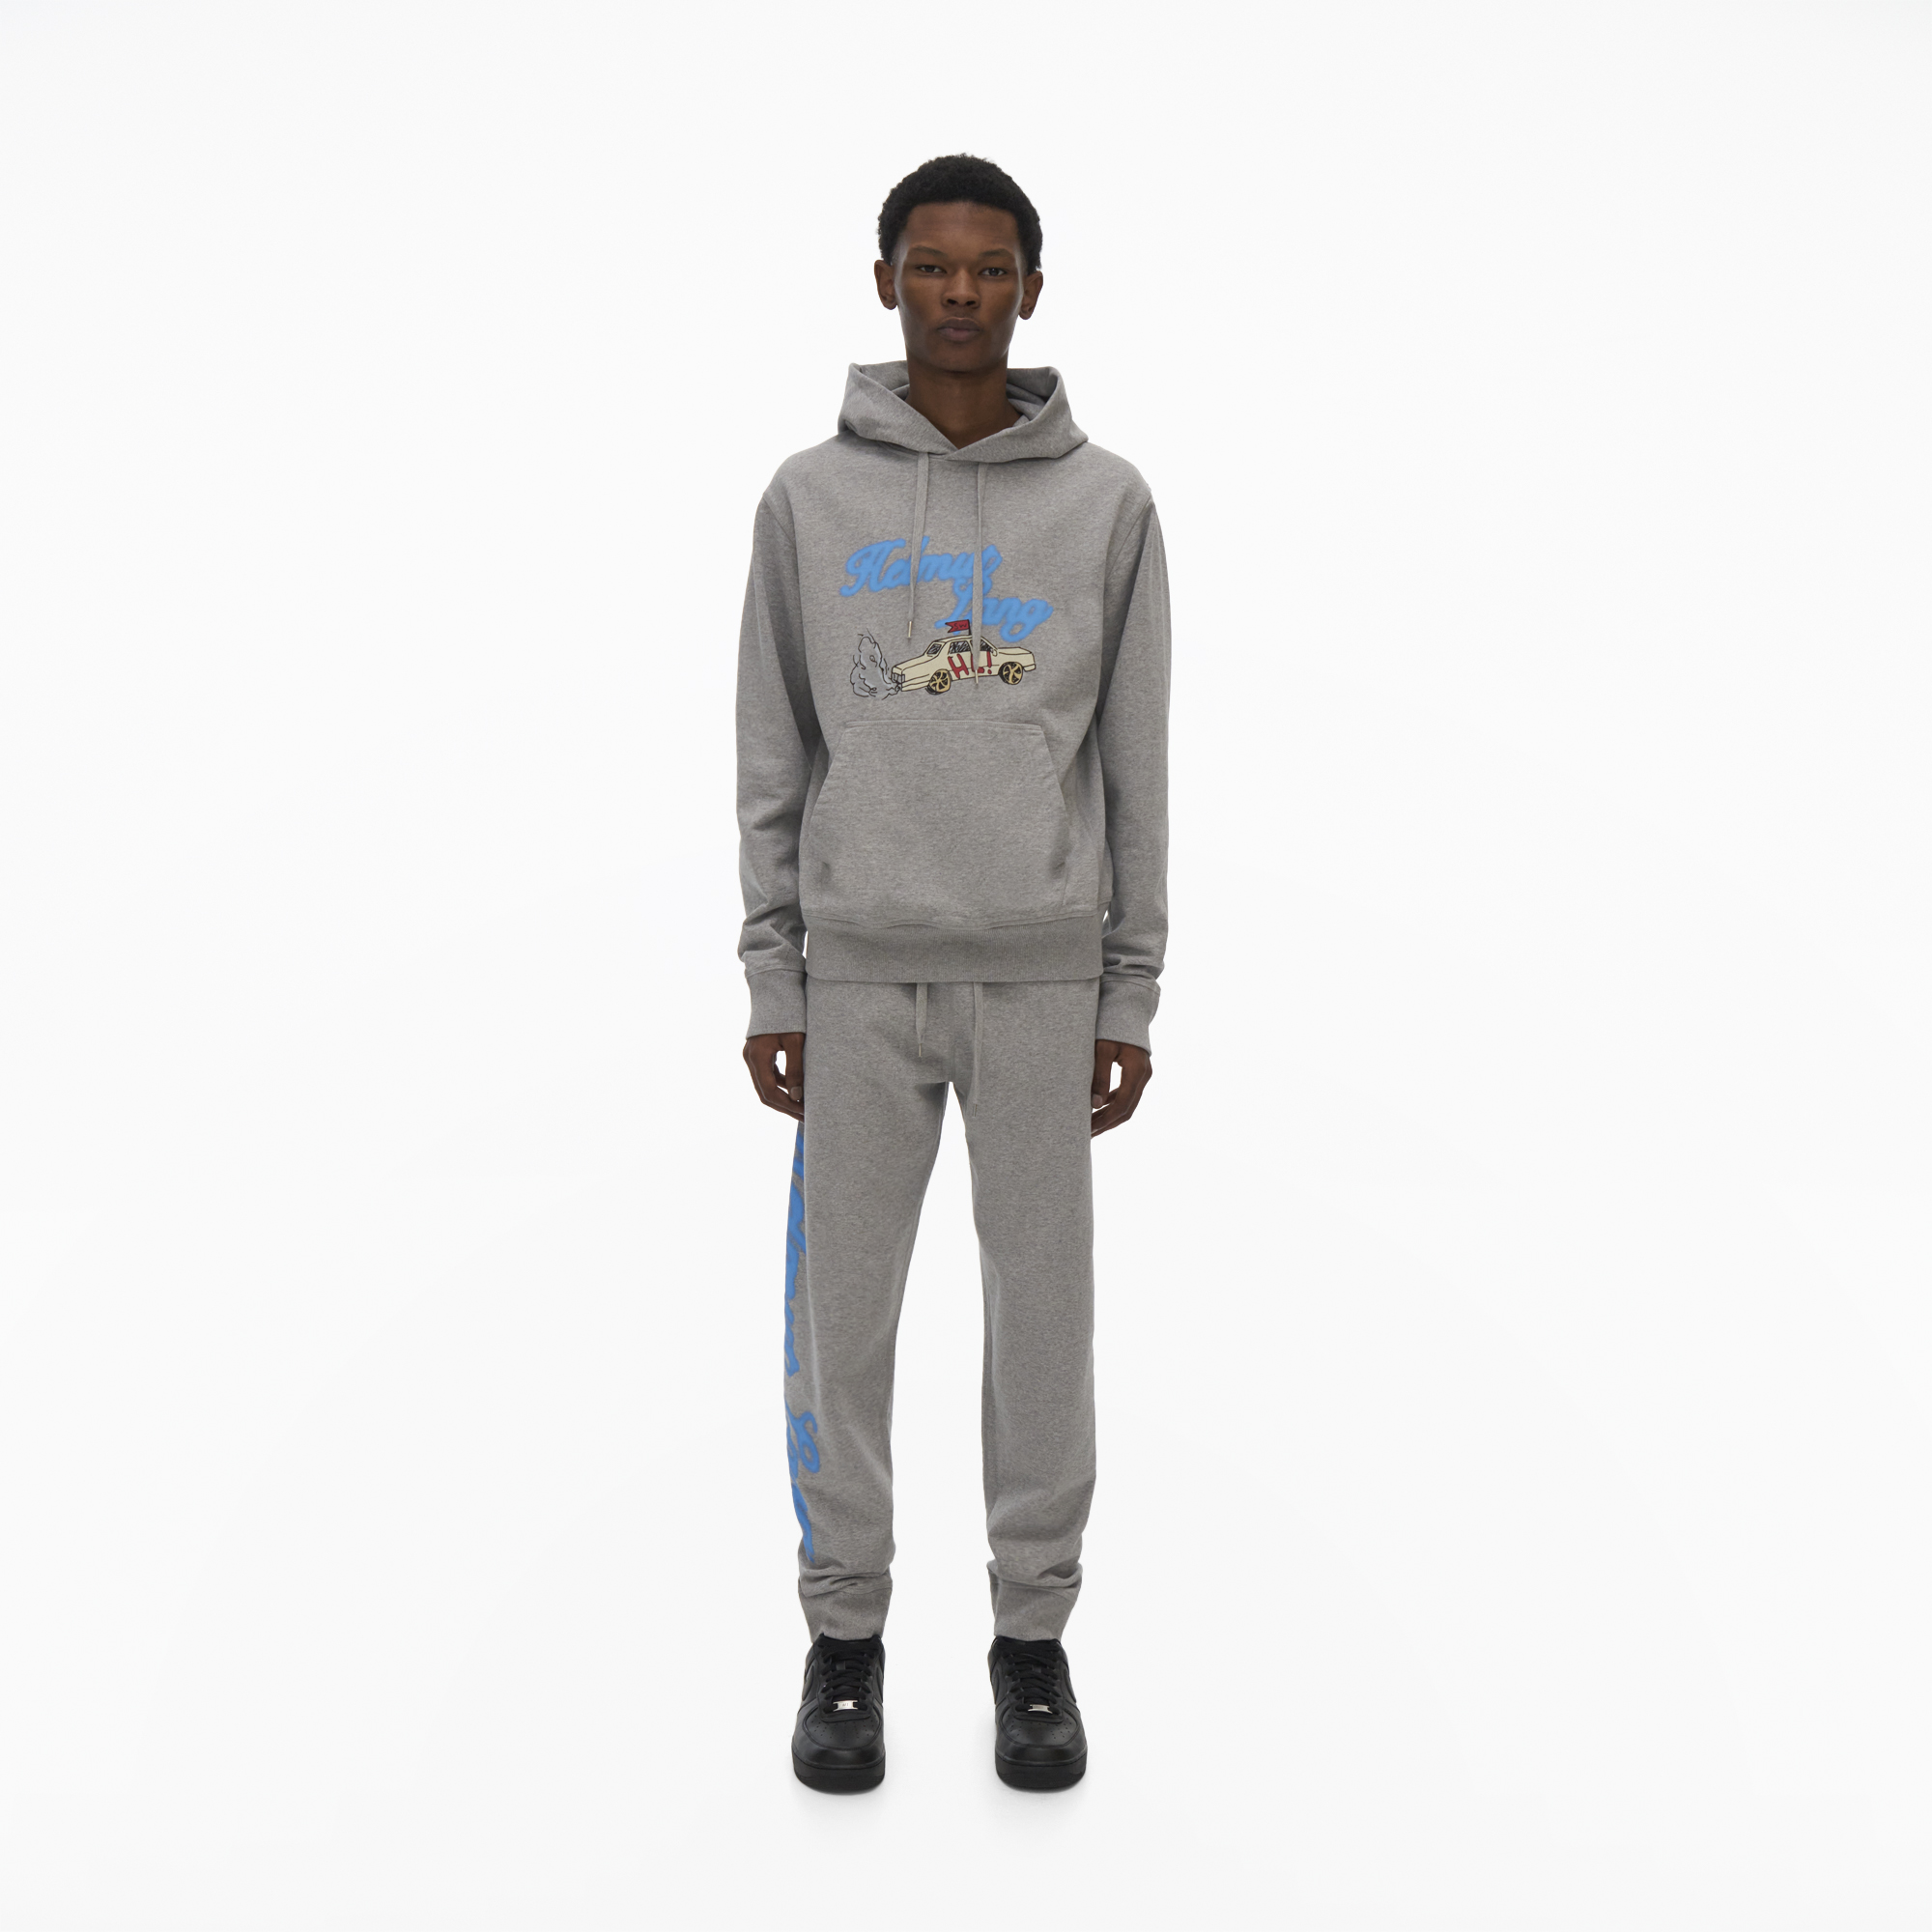 Helmut Lang Partners With Montreal-based Saintwoods On Capsule Collection